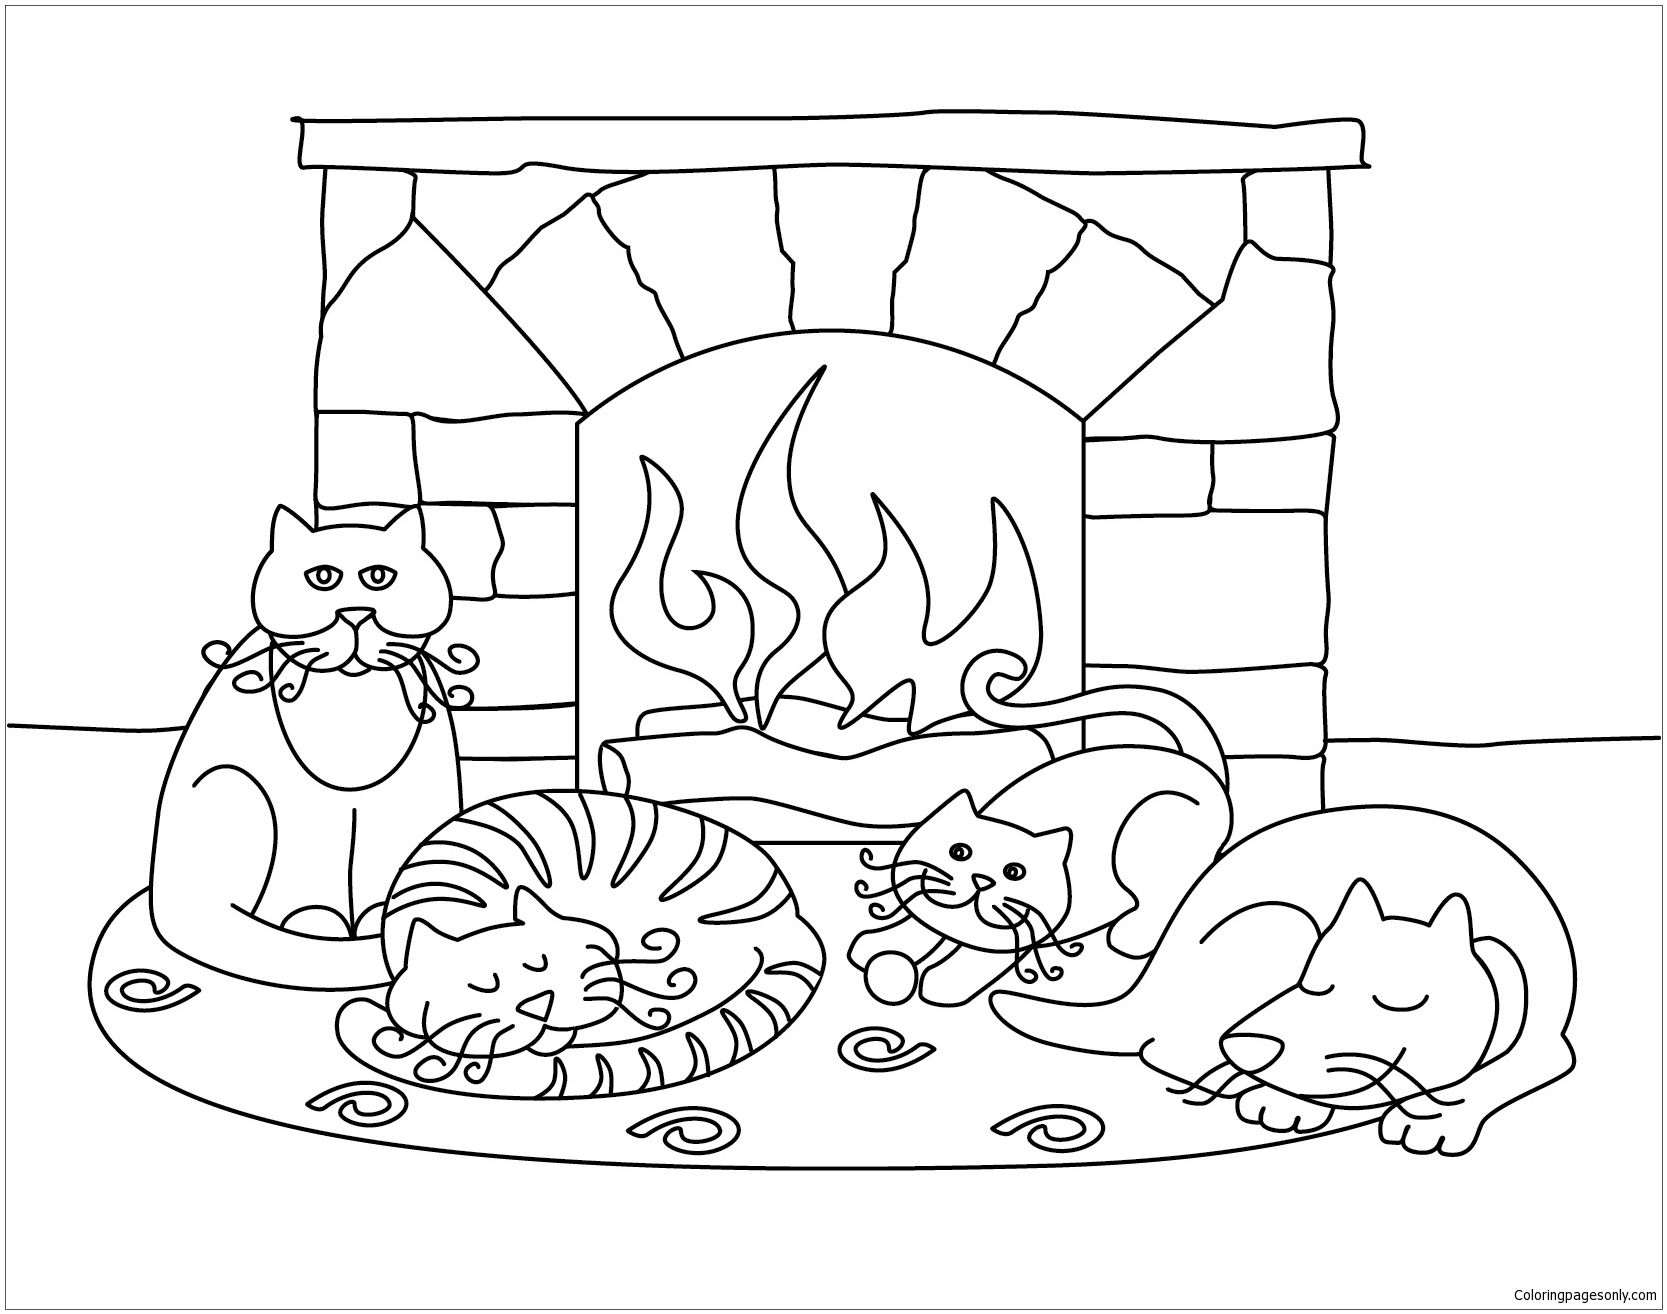 Winter Scenes With Cute Animals Coloring Page | Winter Coloring ...